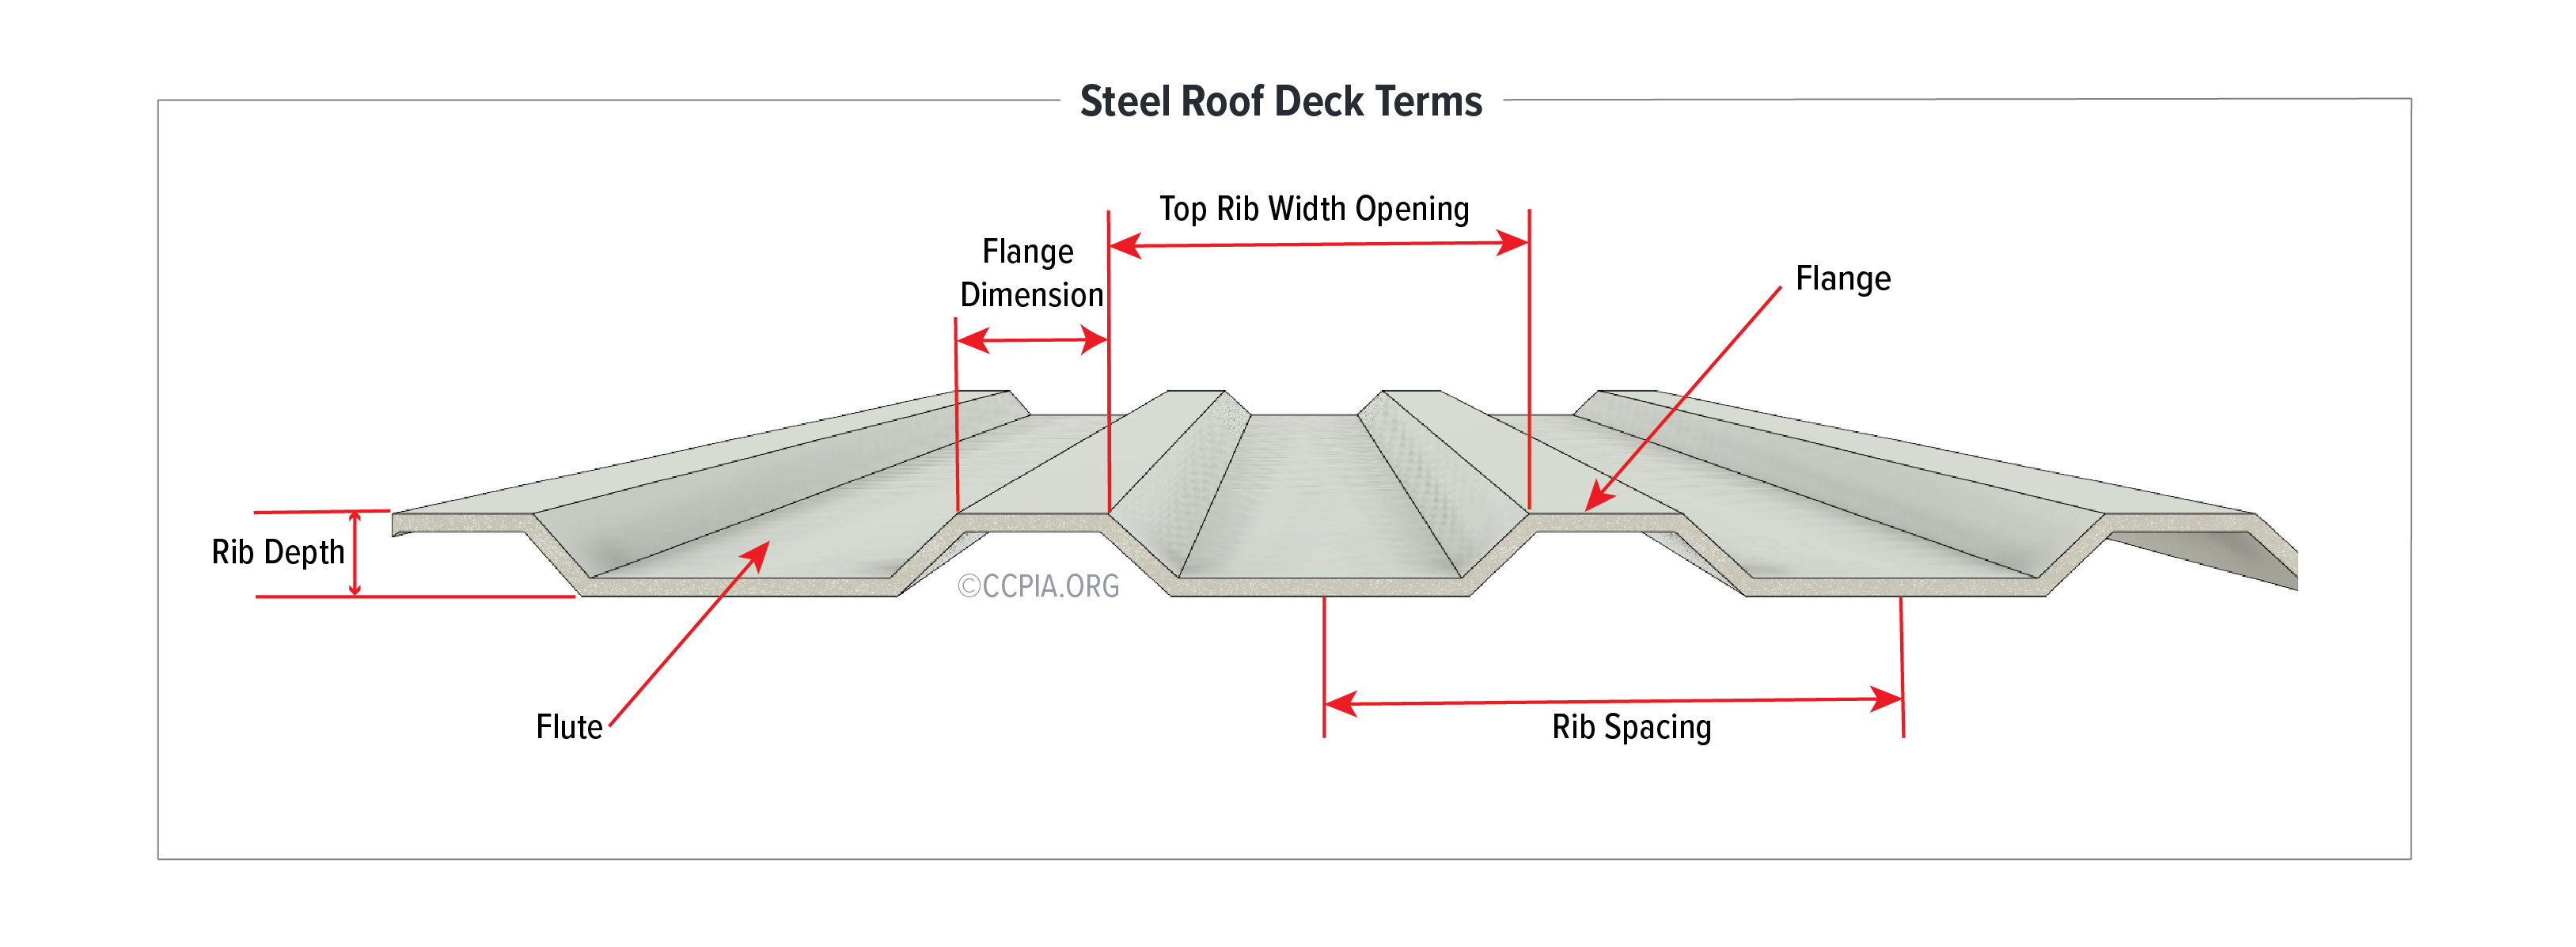 Steel Roof Deck Terms: Rib Depth, Flute, Flange Dimensions, Top Rib Width Opening, Flange, and Rib Spacing